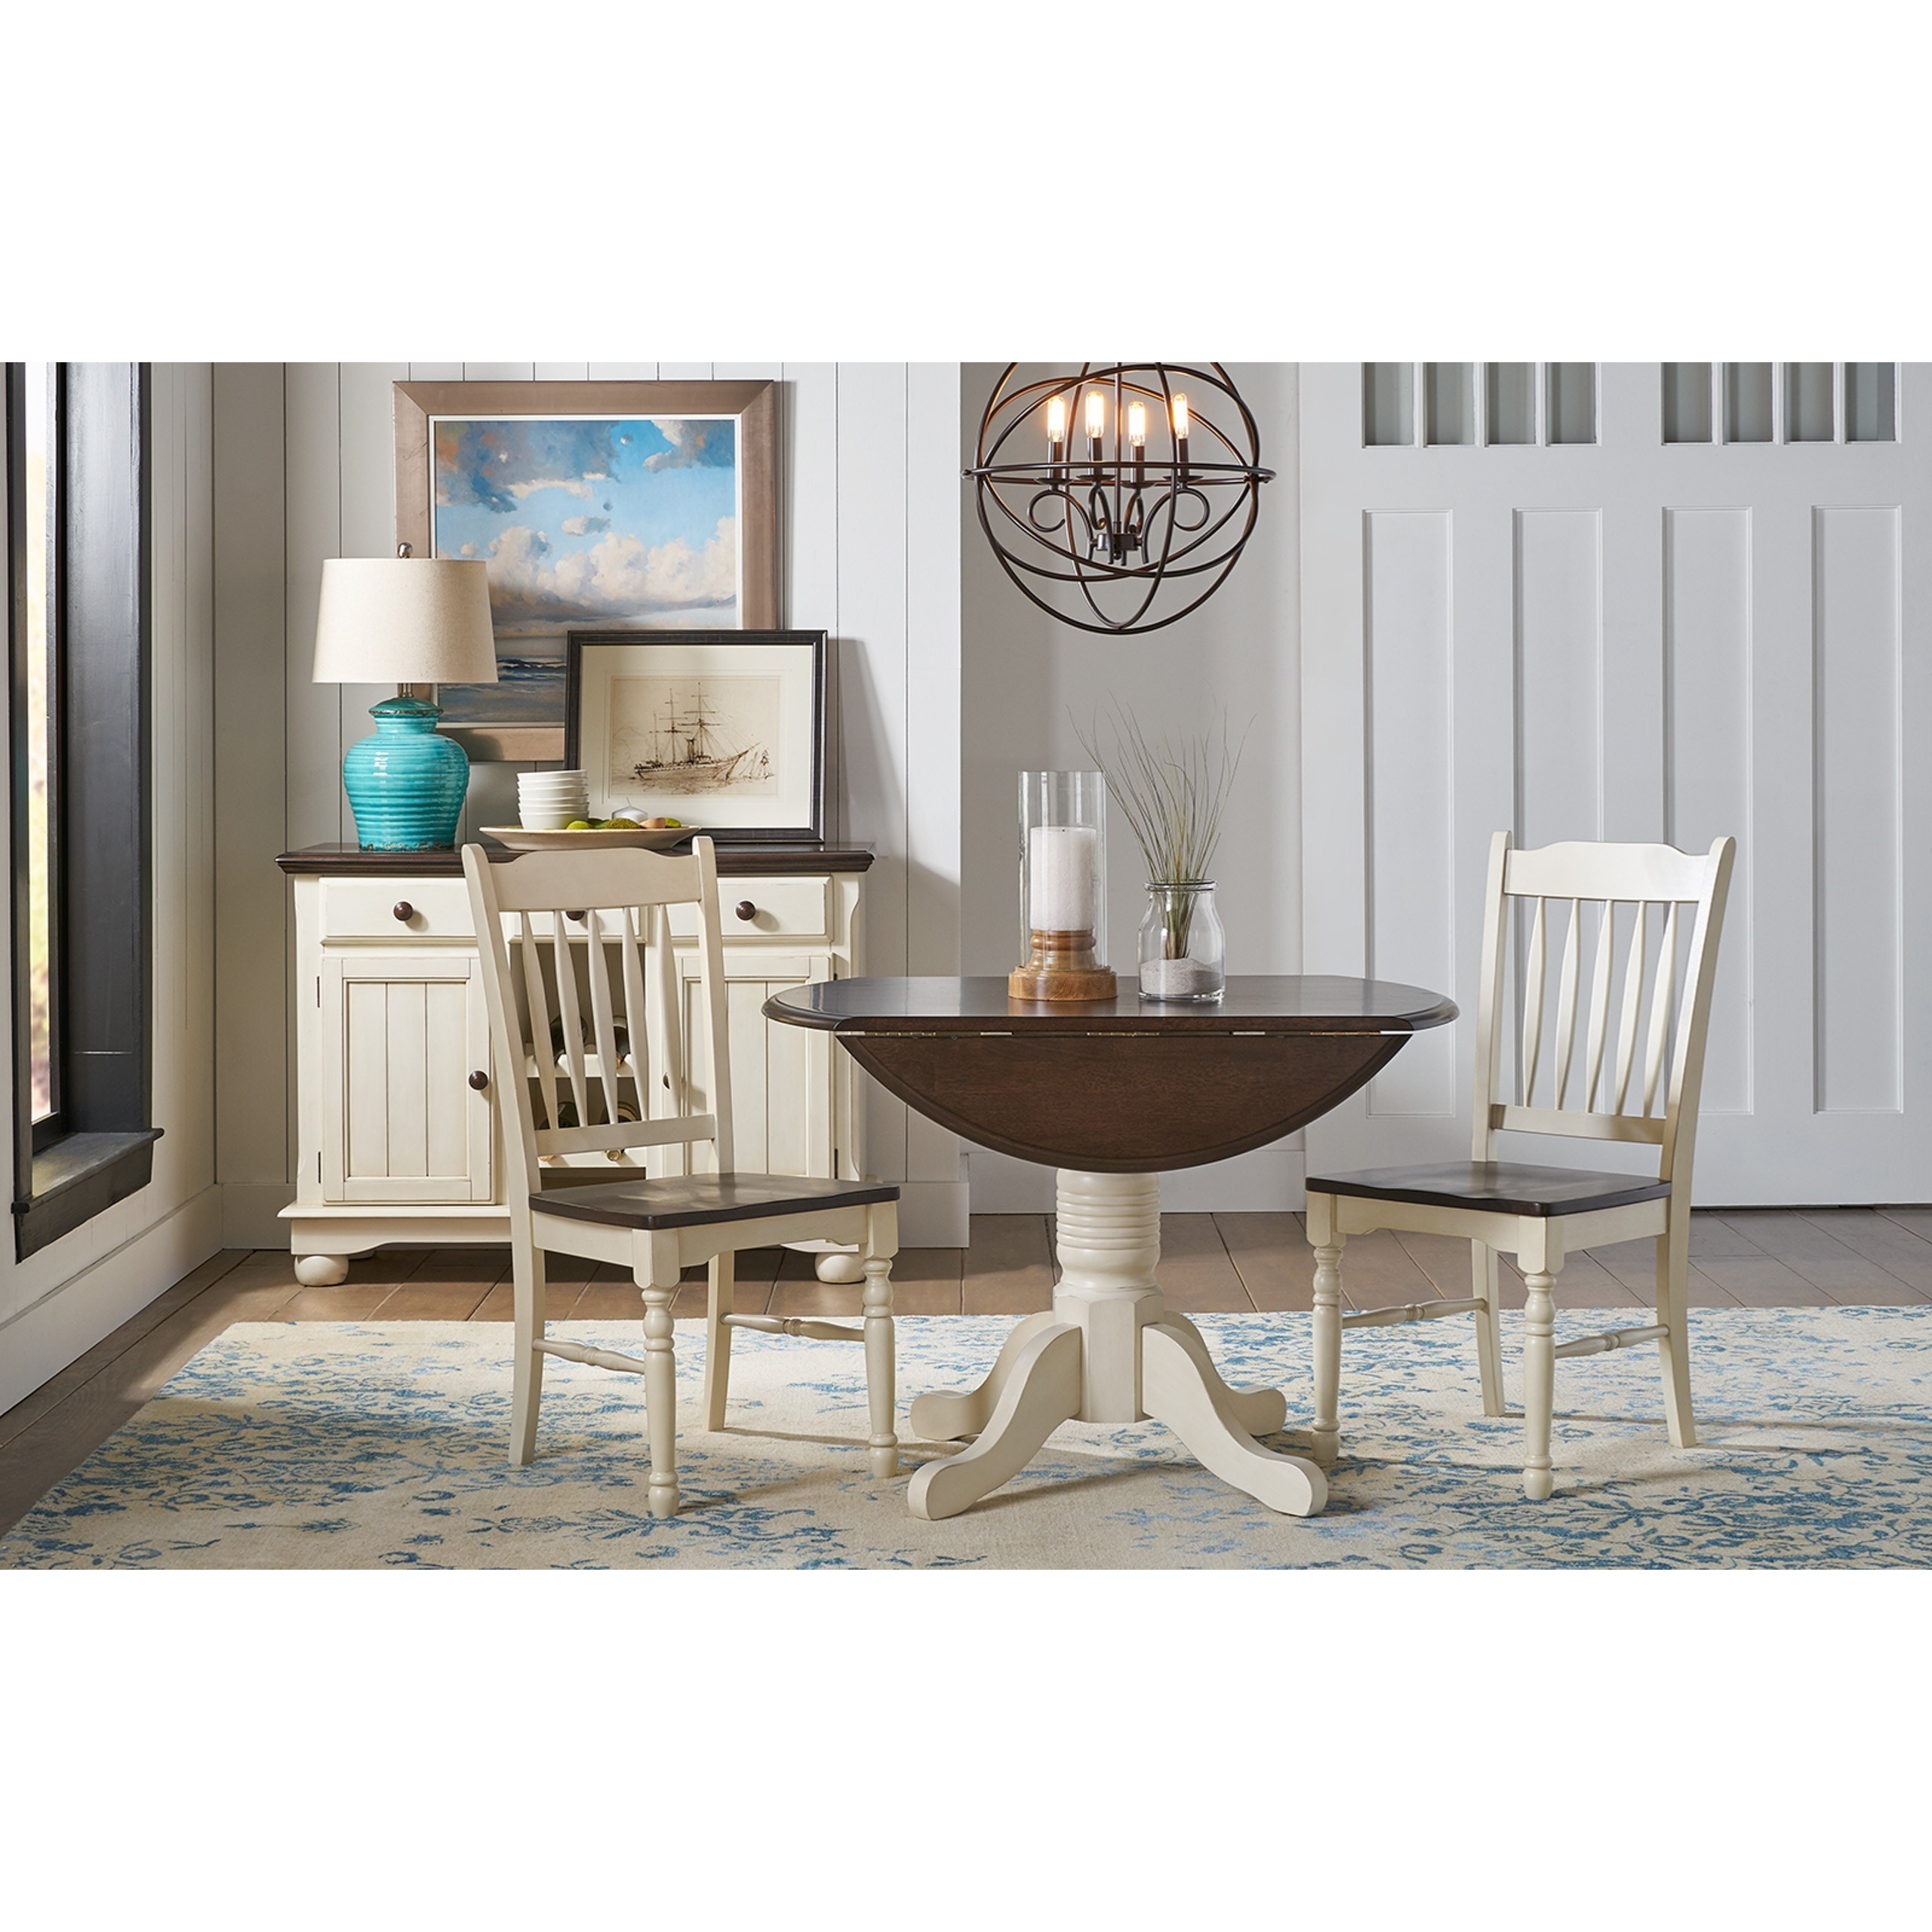 AAmerica British Isles   CO3 Piece Dining Set